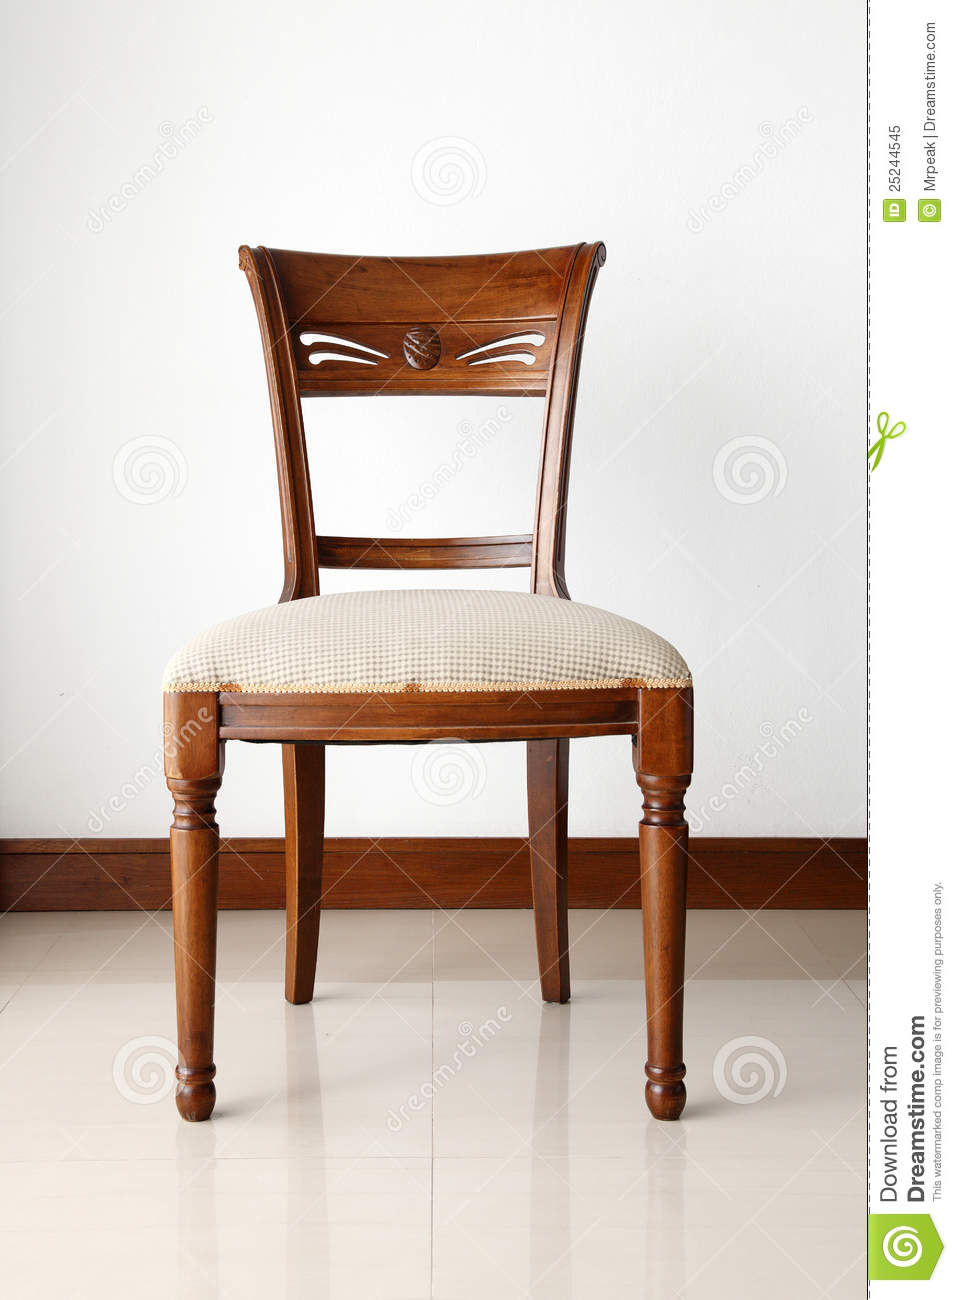 A Wooden Chair With Soft Cushion Royalty Free Stock Photo